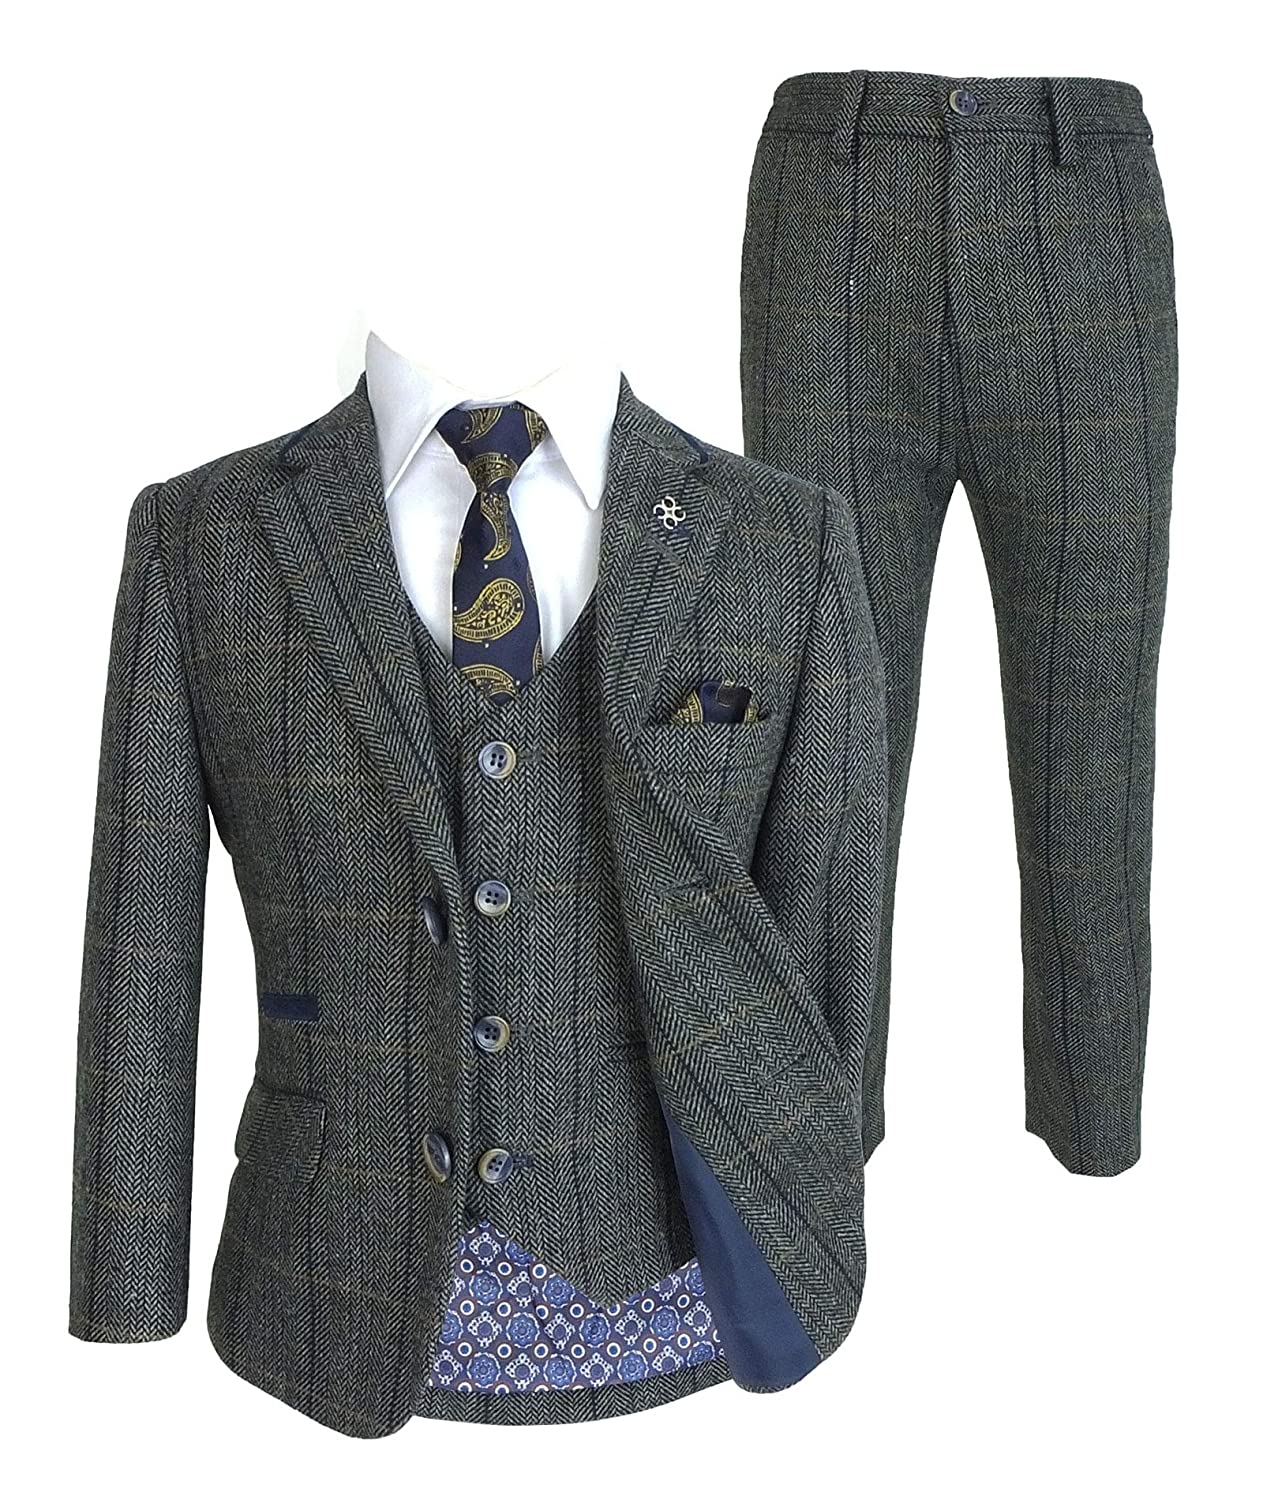 Boys Tweed Herringbone Wool Blend Wedding Suits